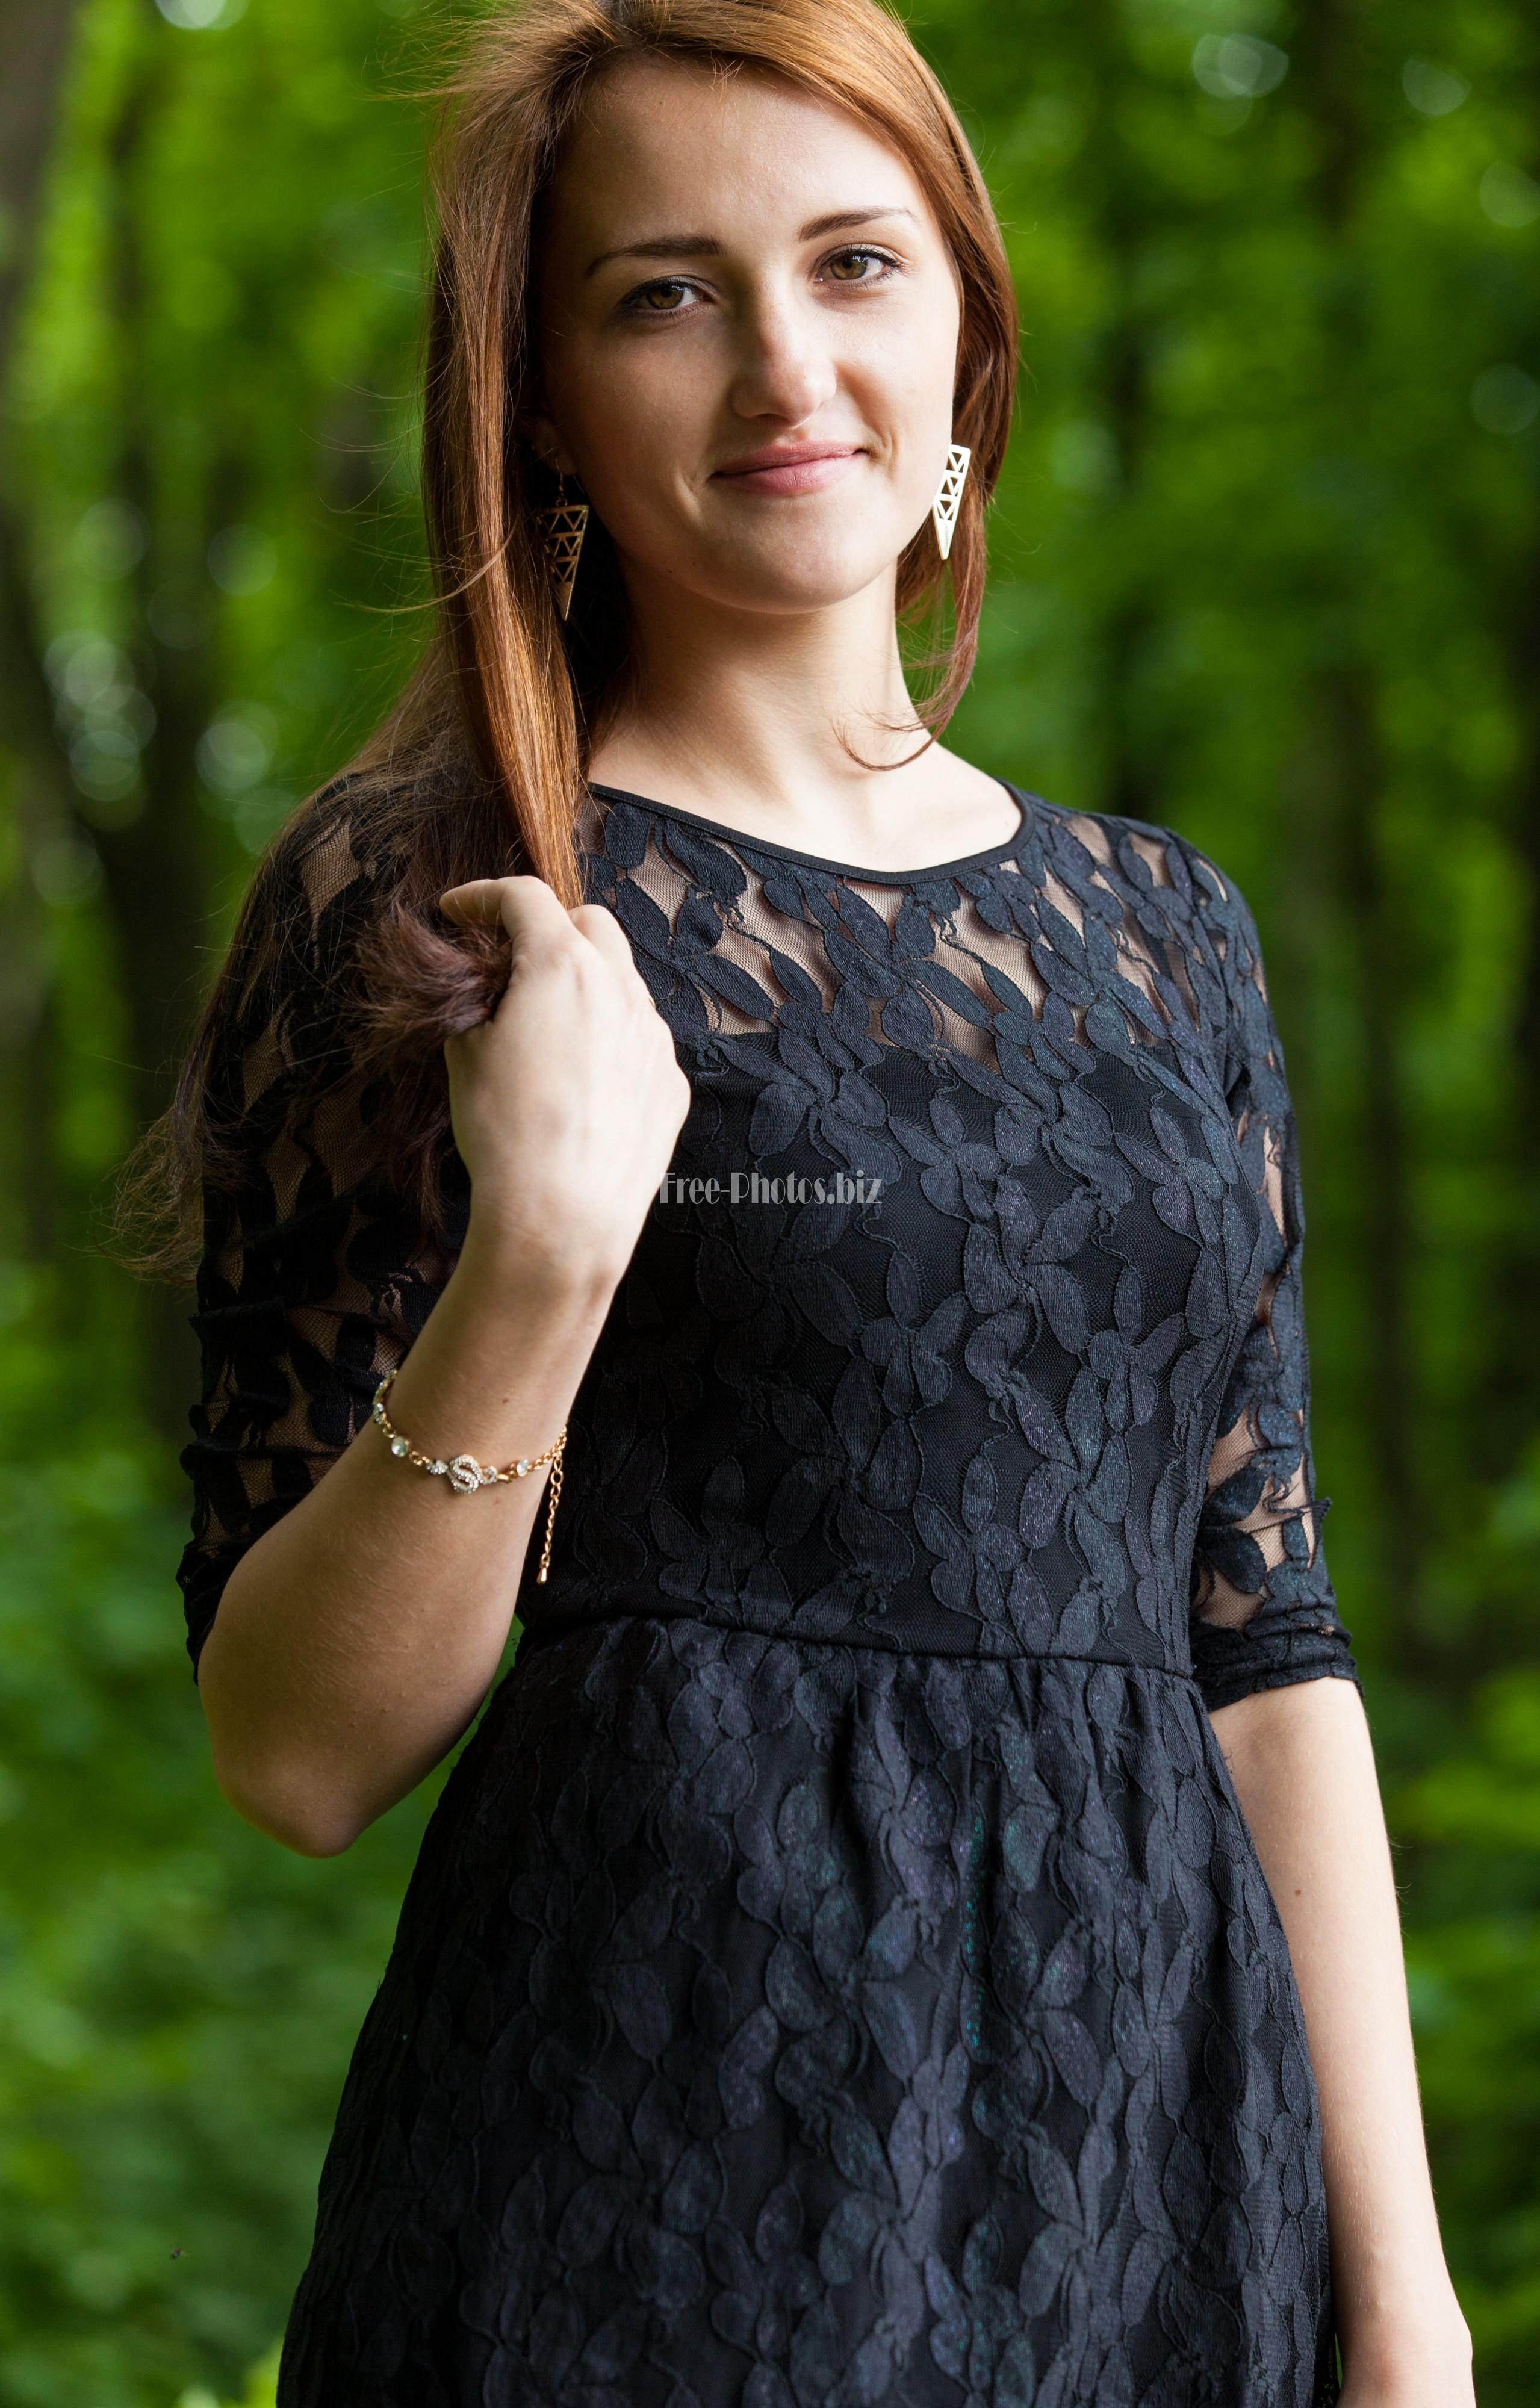 faith single catholic girls My catholic faith is of utmost importance to me and hope to find that in the love that i catholic matescom is for single catholic men and women to find love online.